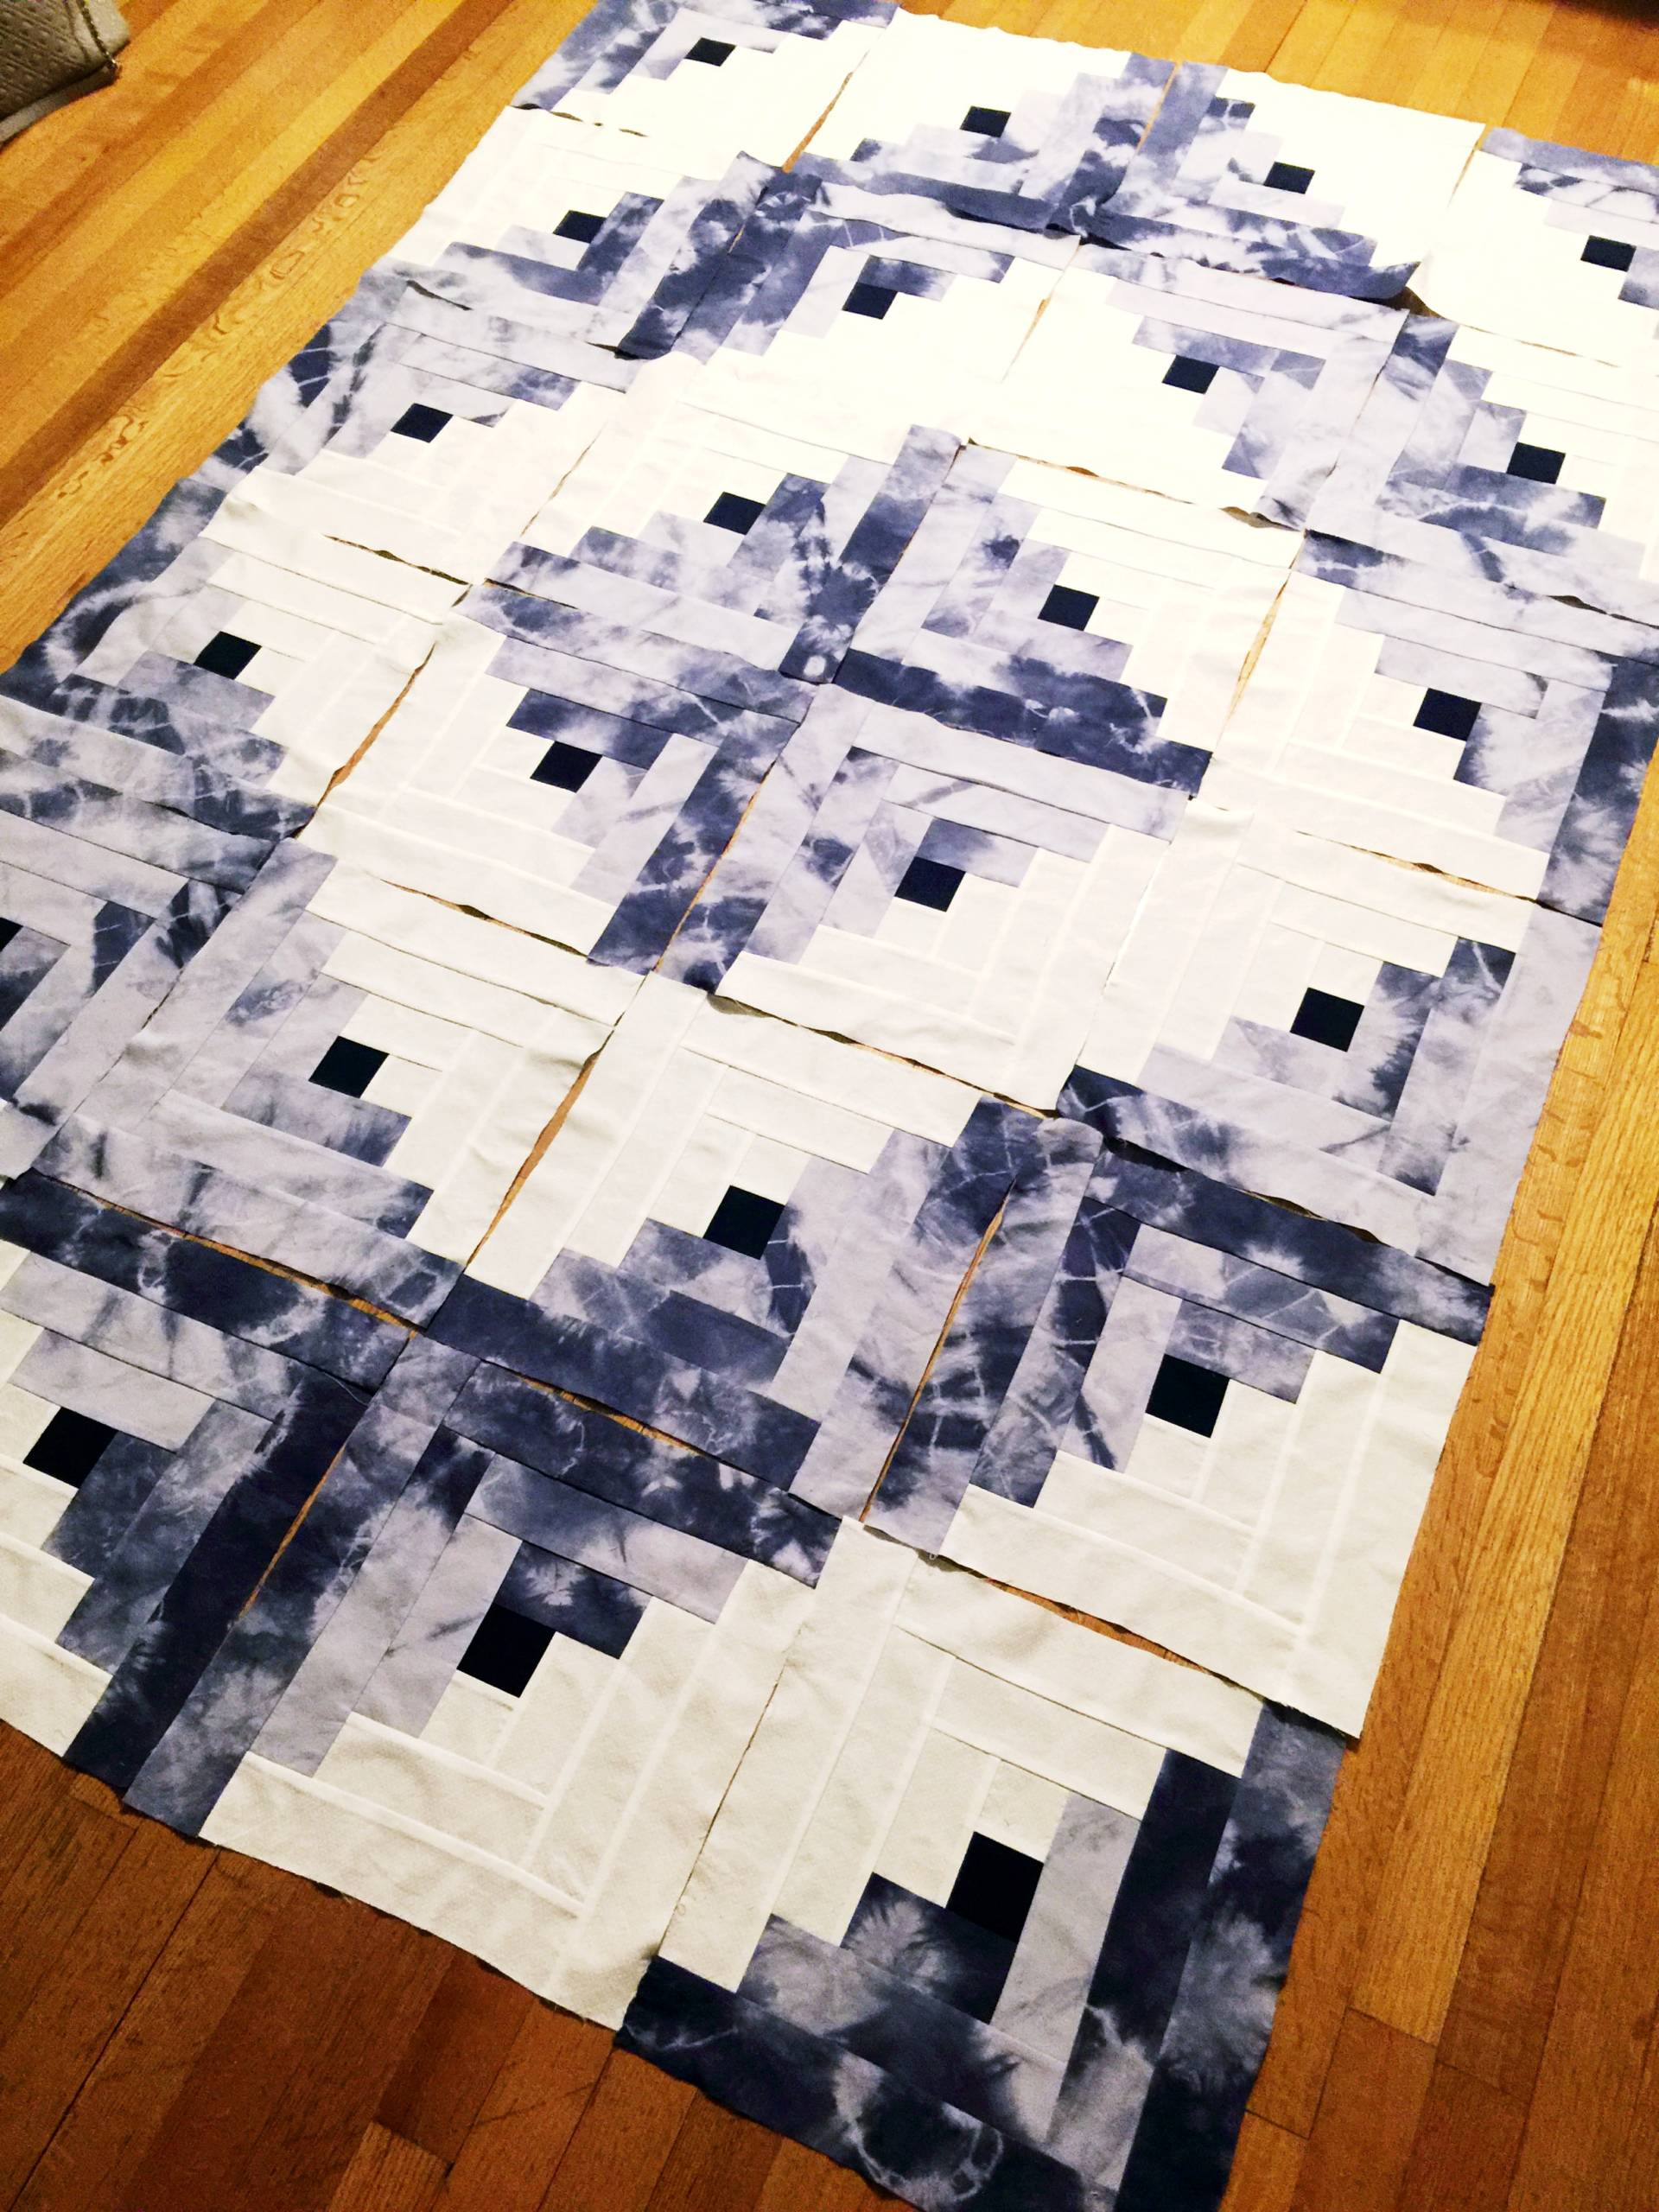 a barn raising style log cabin quilt layout